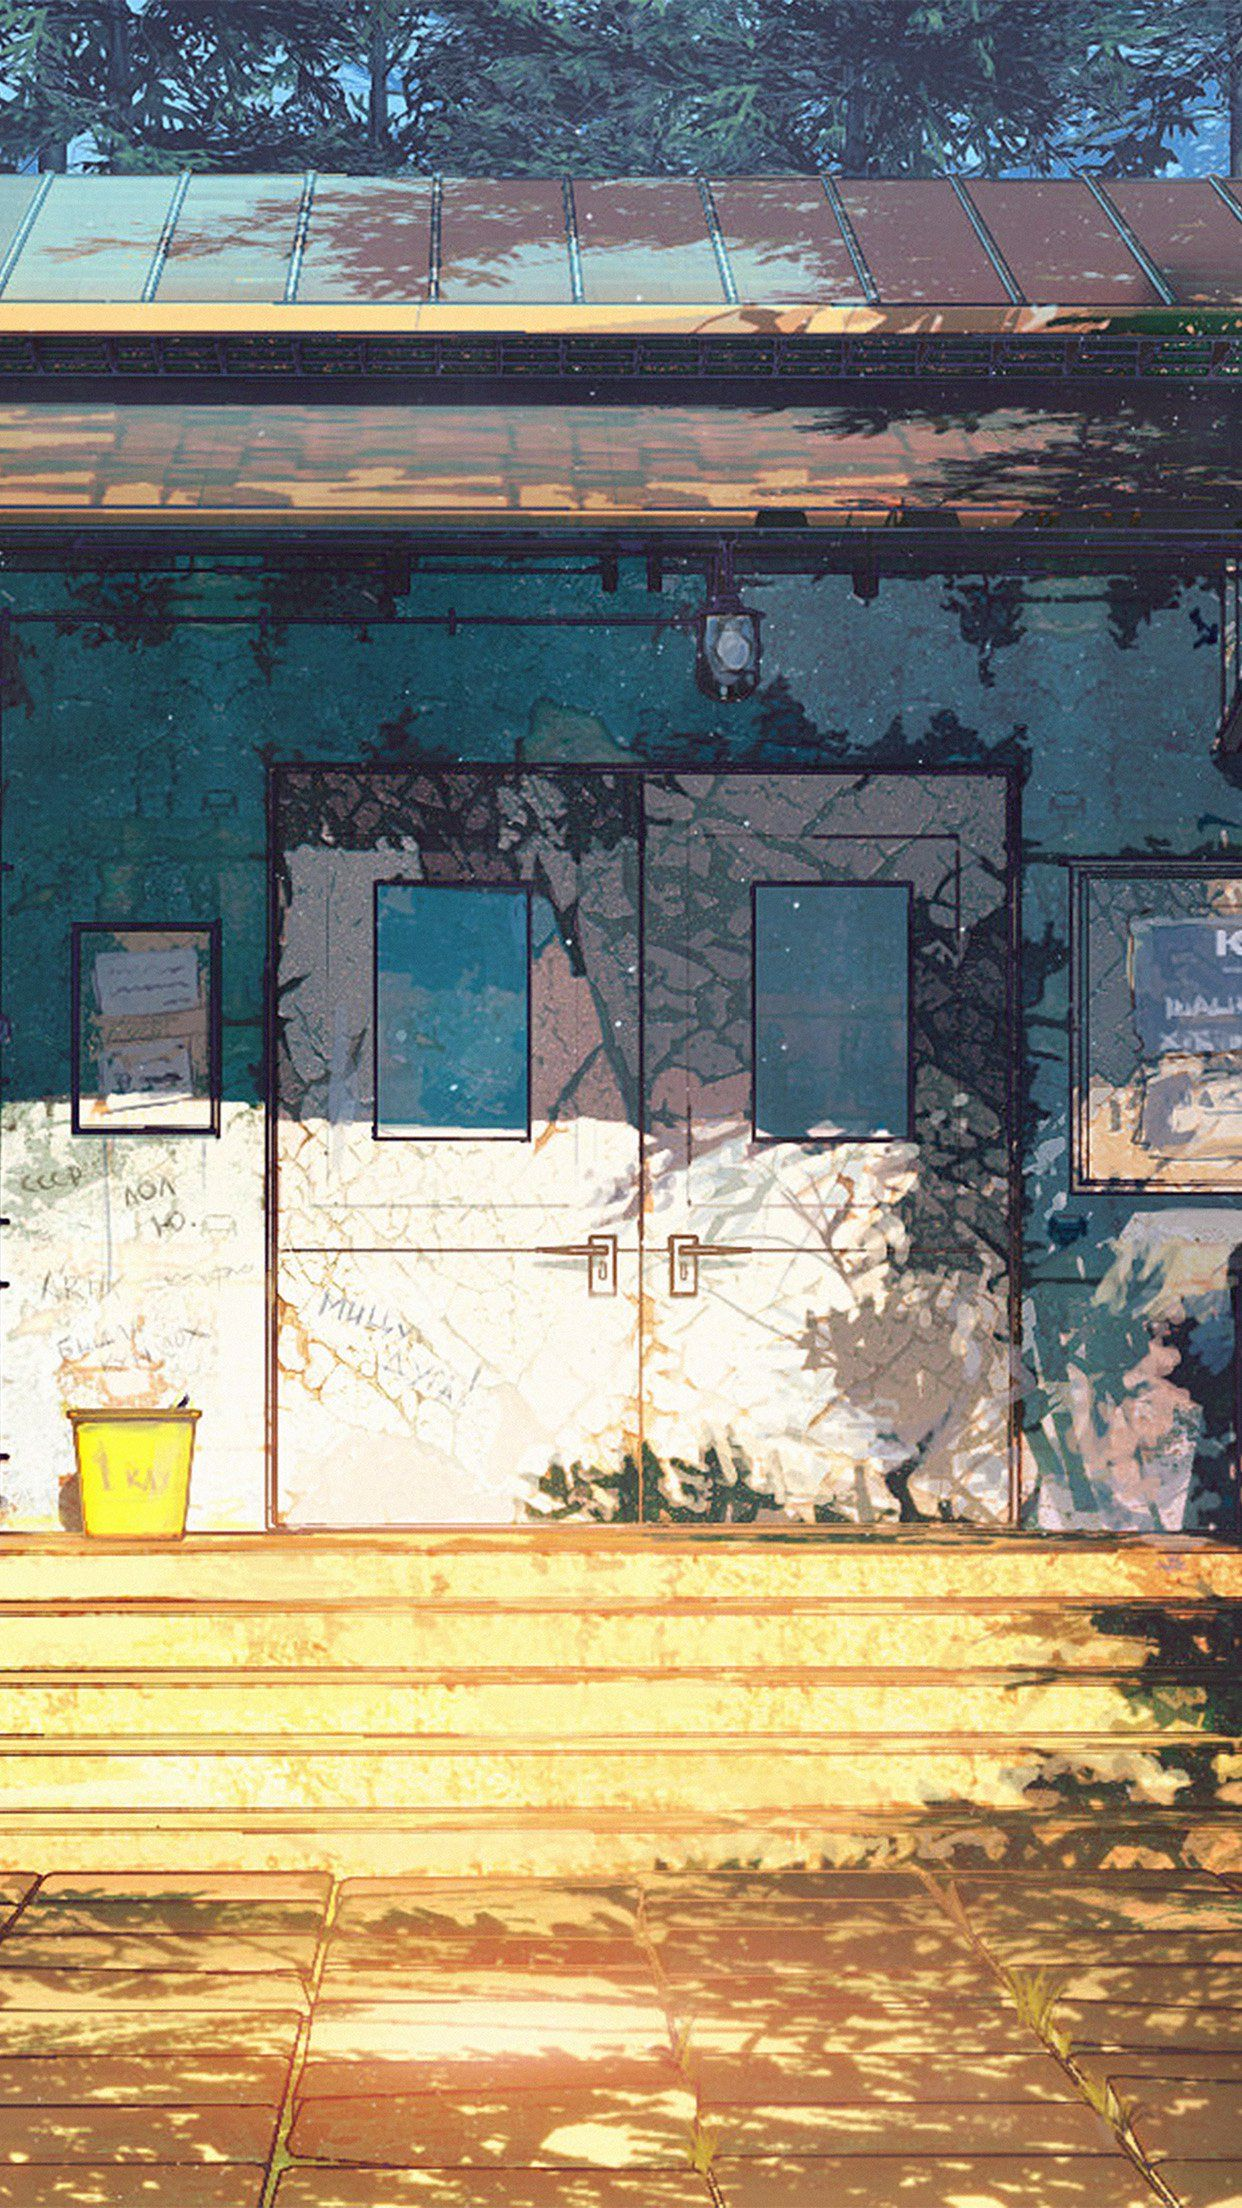 Camp Wood House Anime Illustration Art Arseniy Chebynkin Android Wallpaper Cool Wallpapers For Phones Best Iphone Wallpapers Phone Wallpaper Images